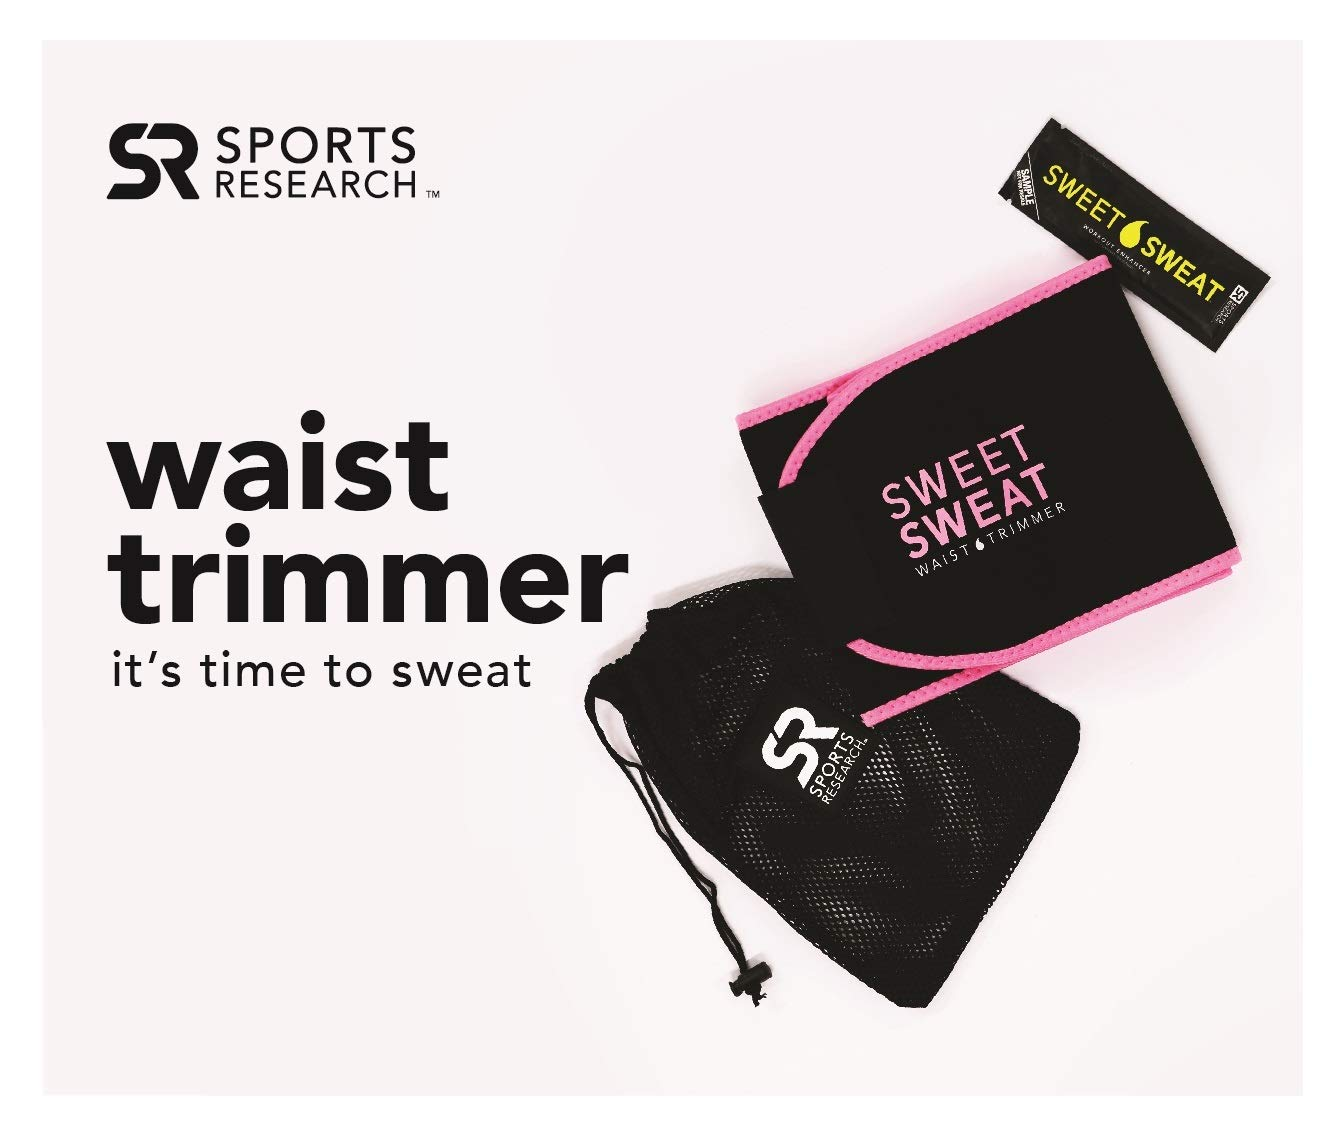 c4cb56638f2 Amazon.com  Sports Research Sweet Sweat Premium Waist Trimmer (Pink Logo)  for Men   Women ~ Includes Free Sample of Sweet Sweat Gel!  Sports    Outdoors